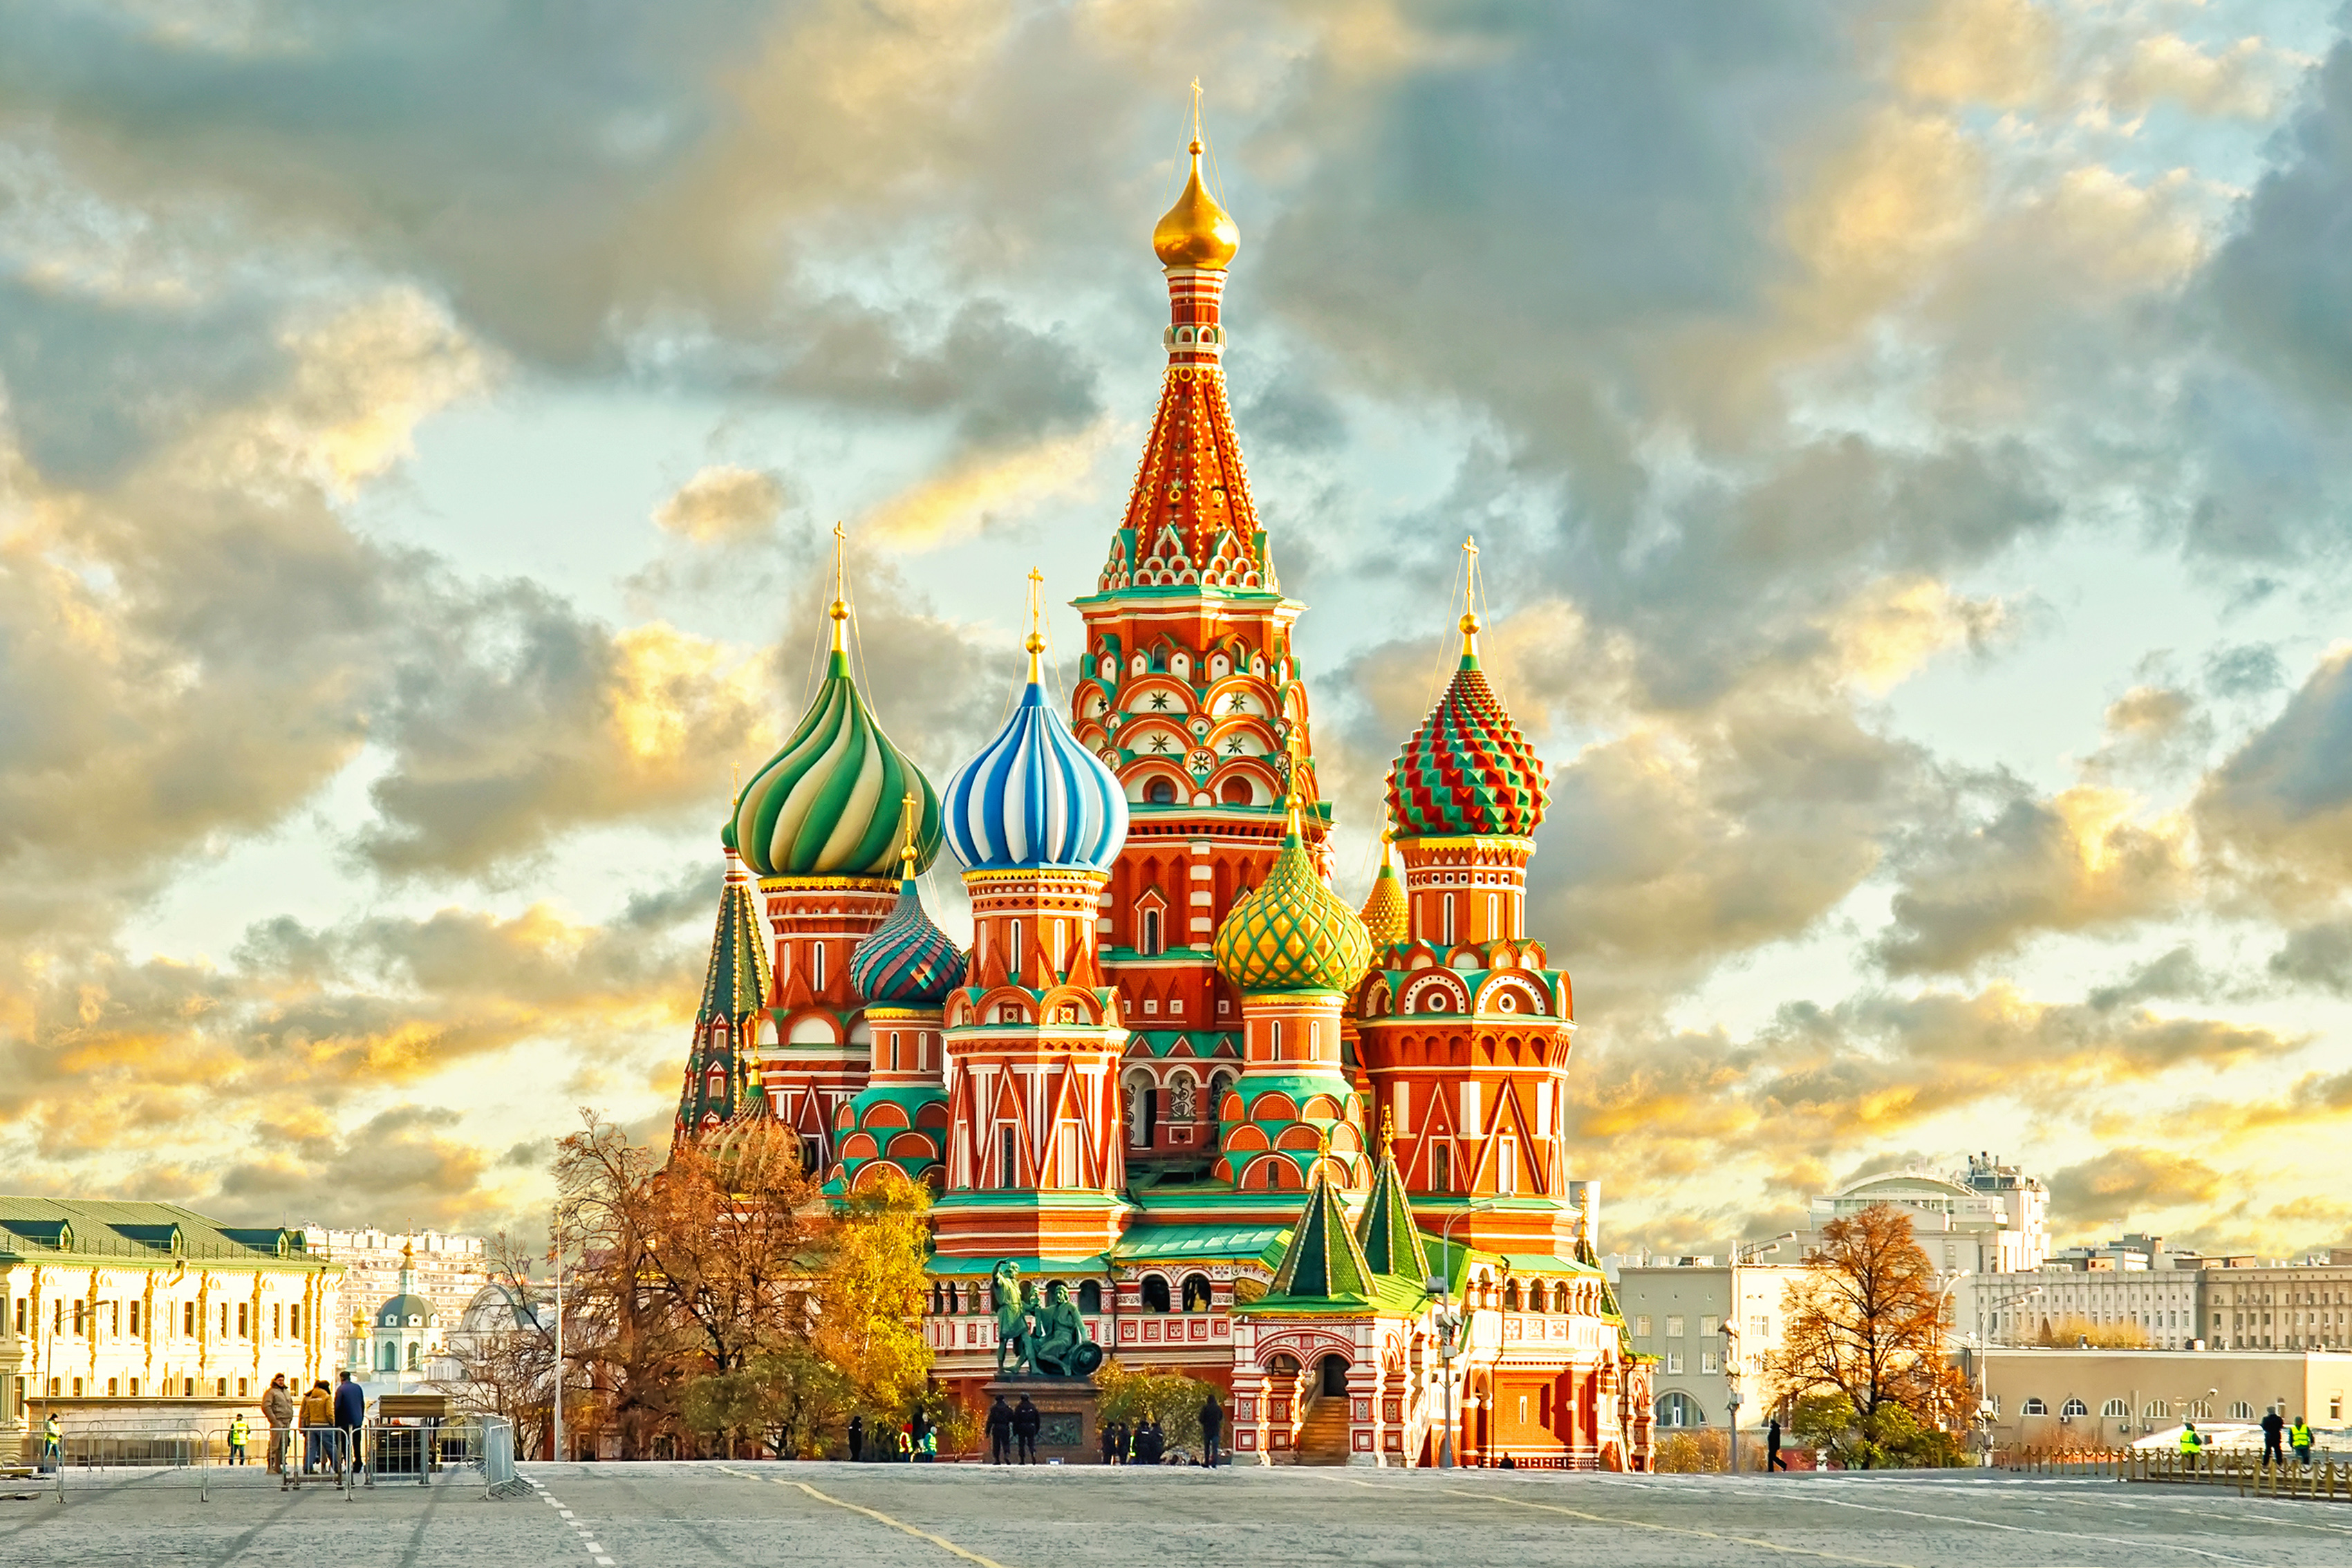 Images of Famous Colorful Russian Palace - #rock-cafe